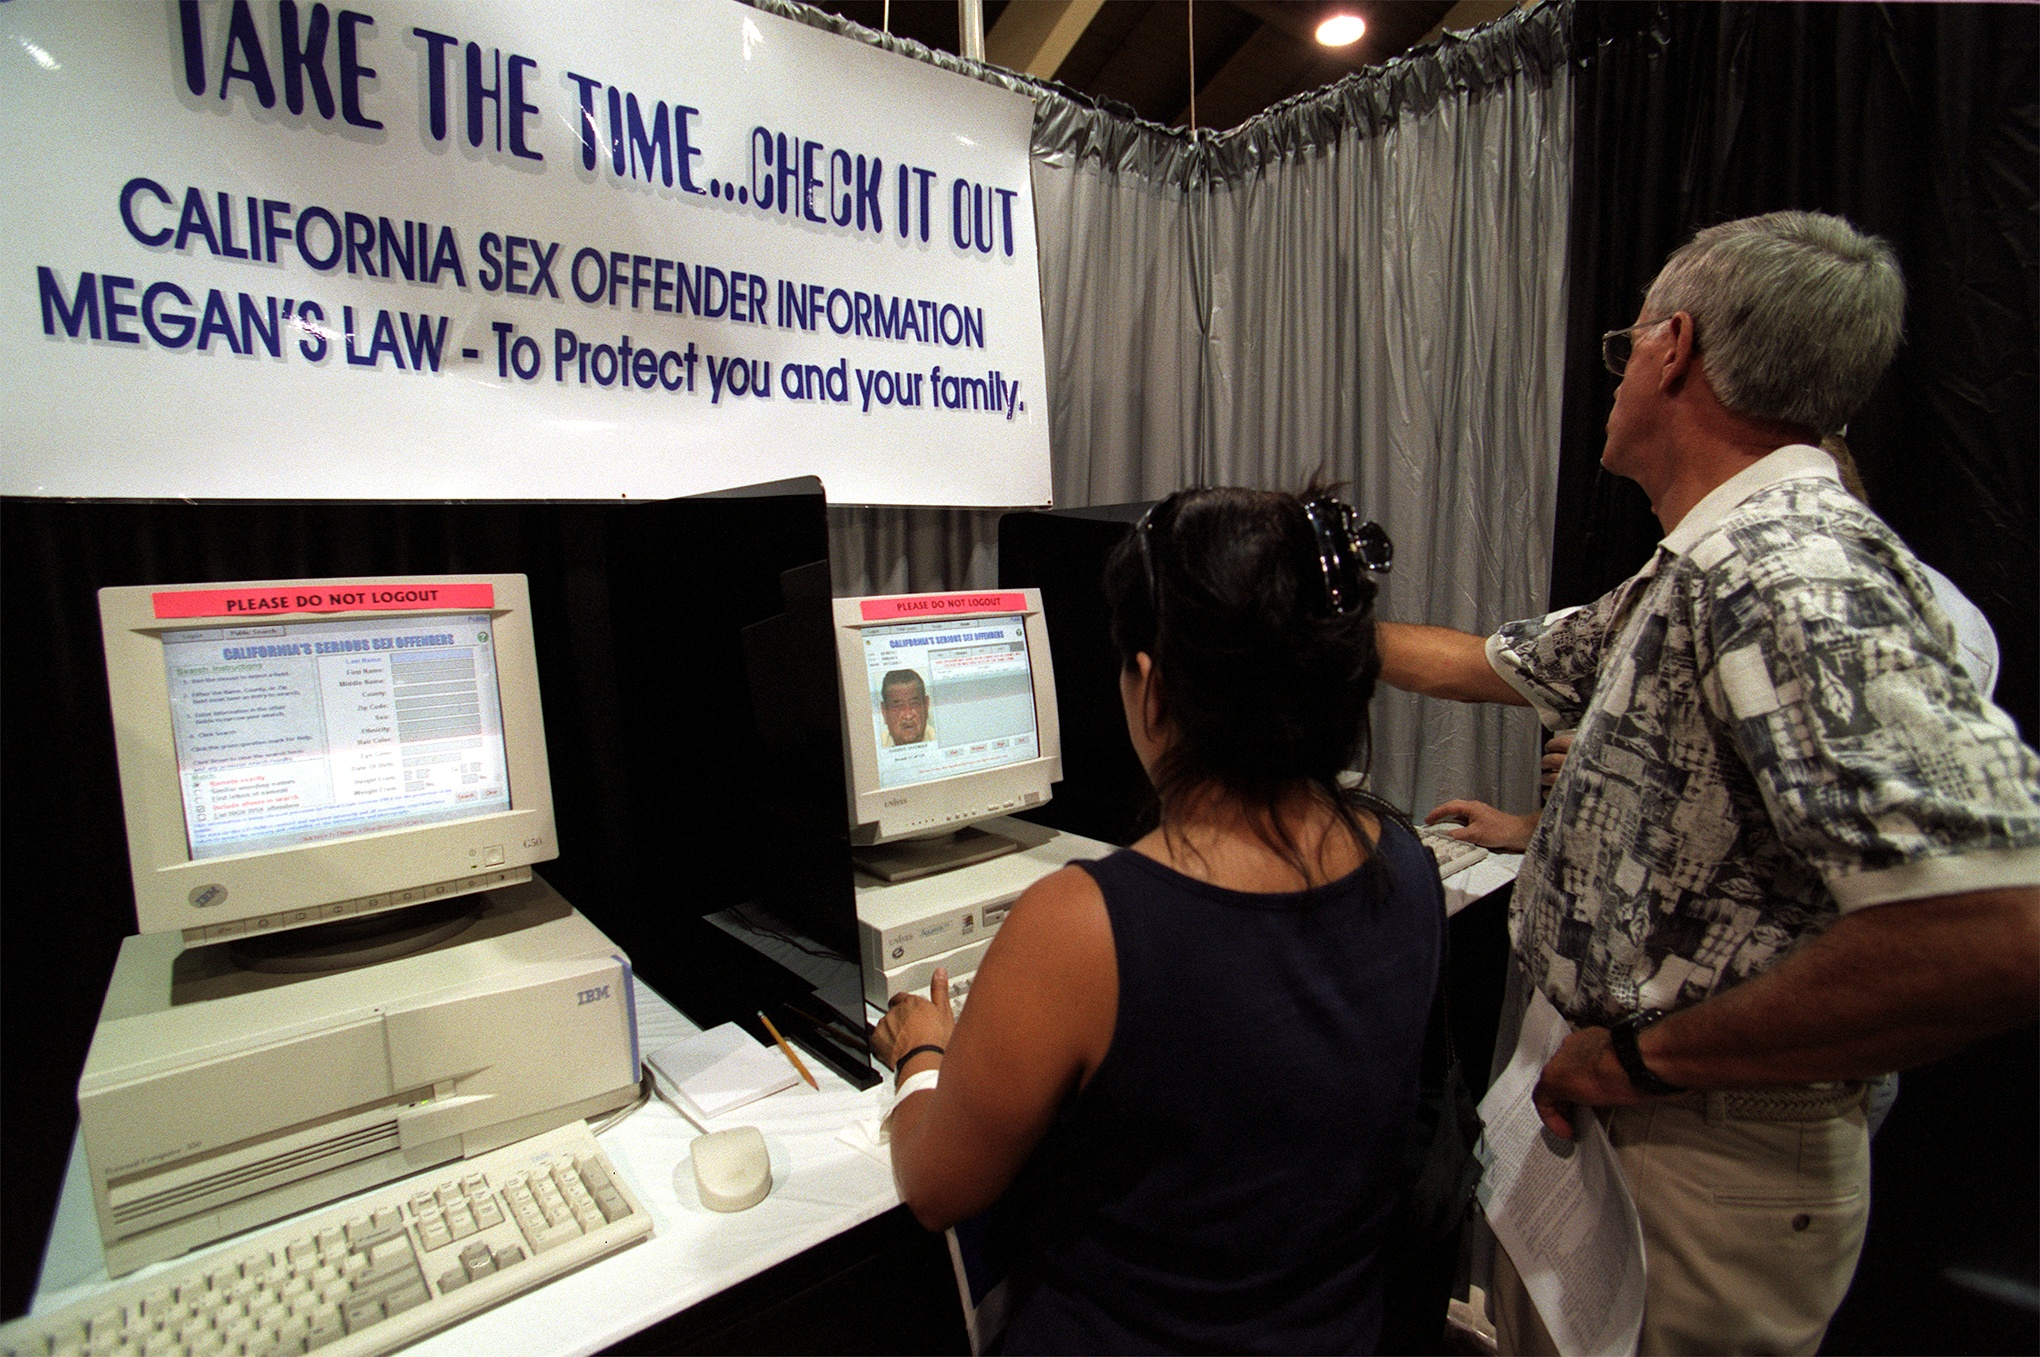 At the Los Angeles County Fair in Pomona, a booth was set up for fairgoers to check on sex offenders in their neighborhood under the Megan's Law.